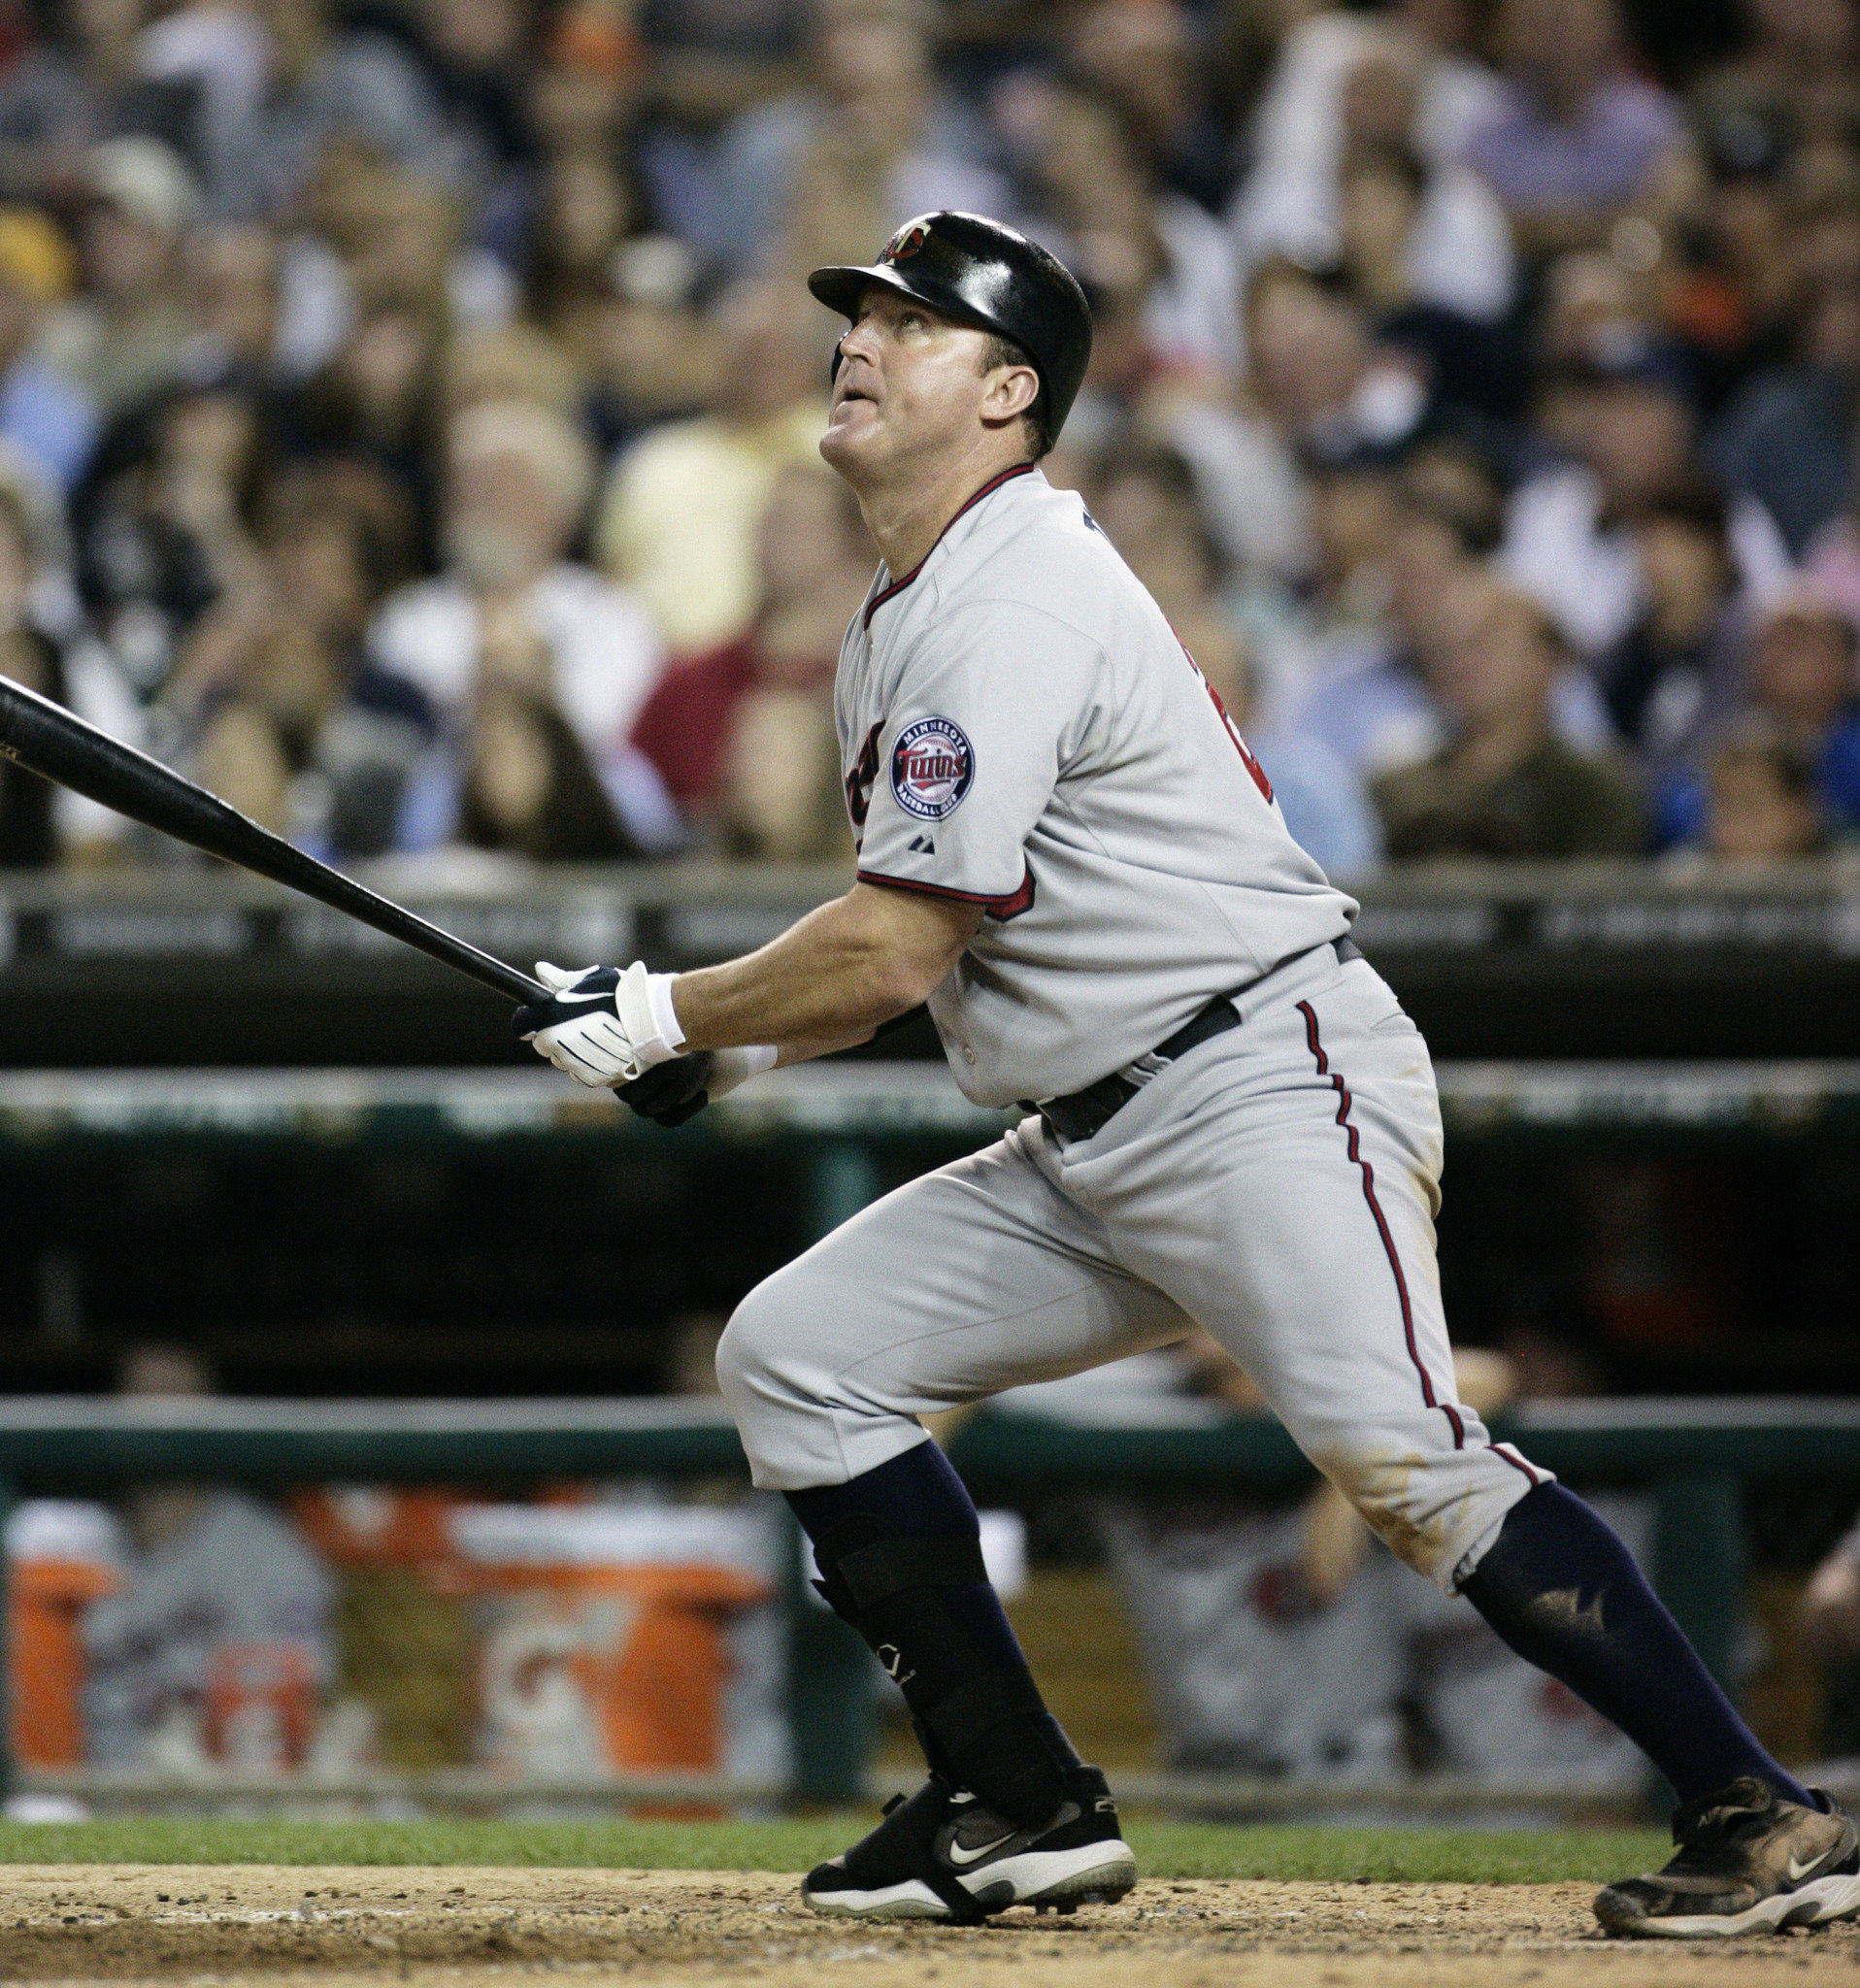 Jim Thome hits his 600th home run